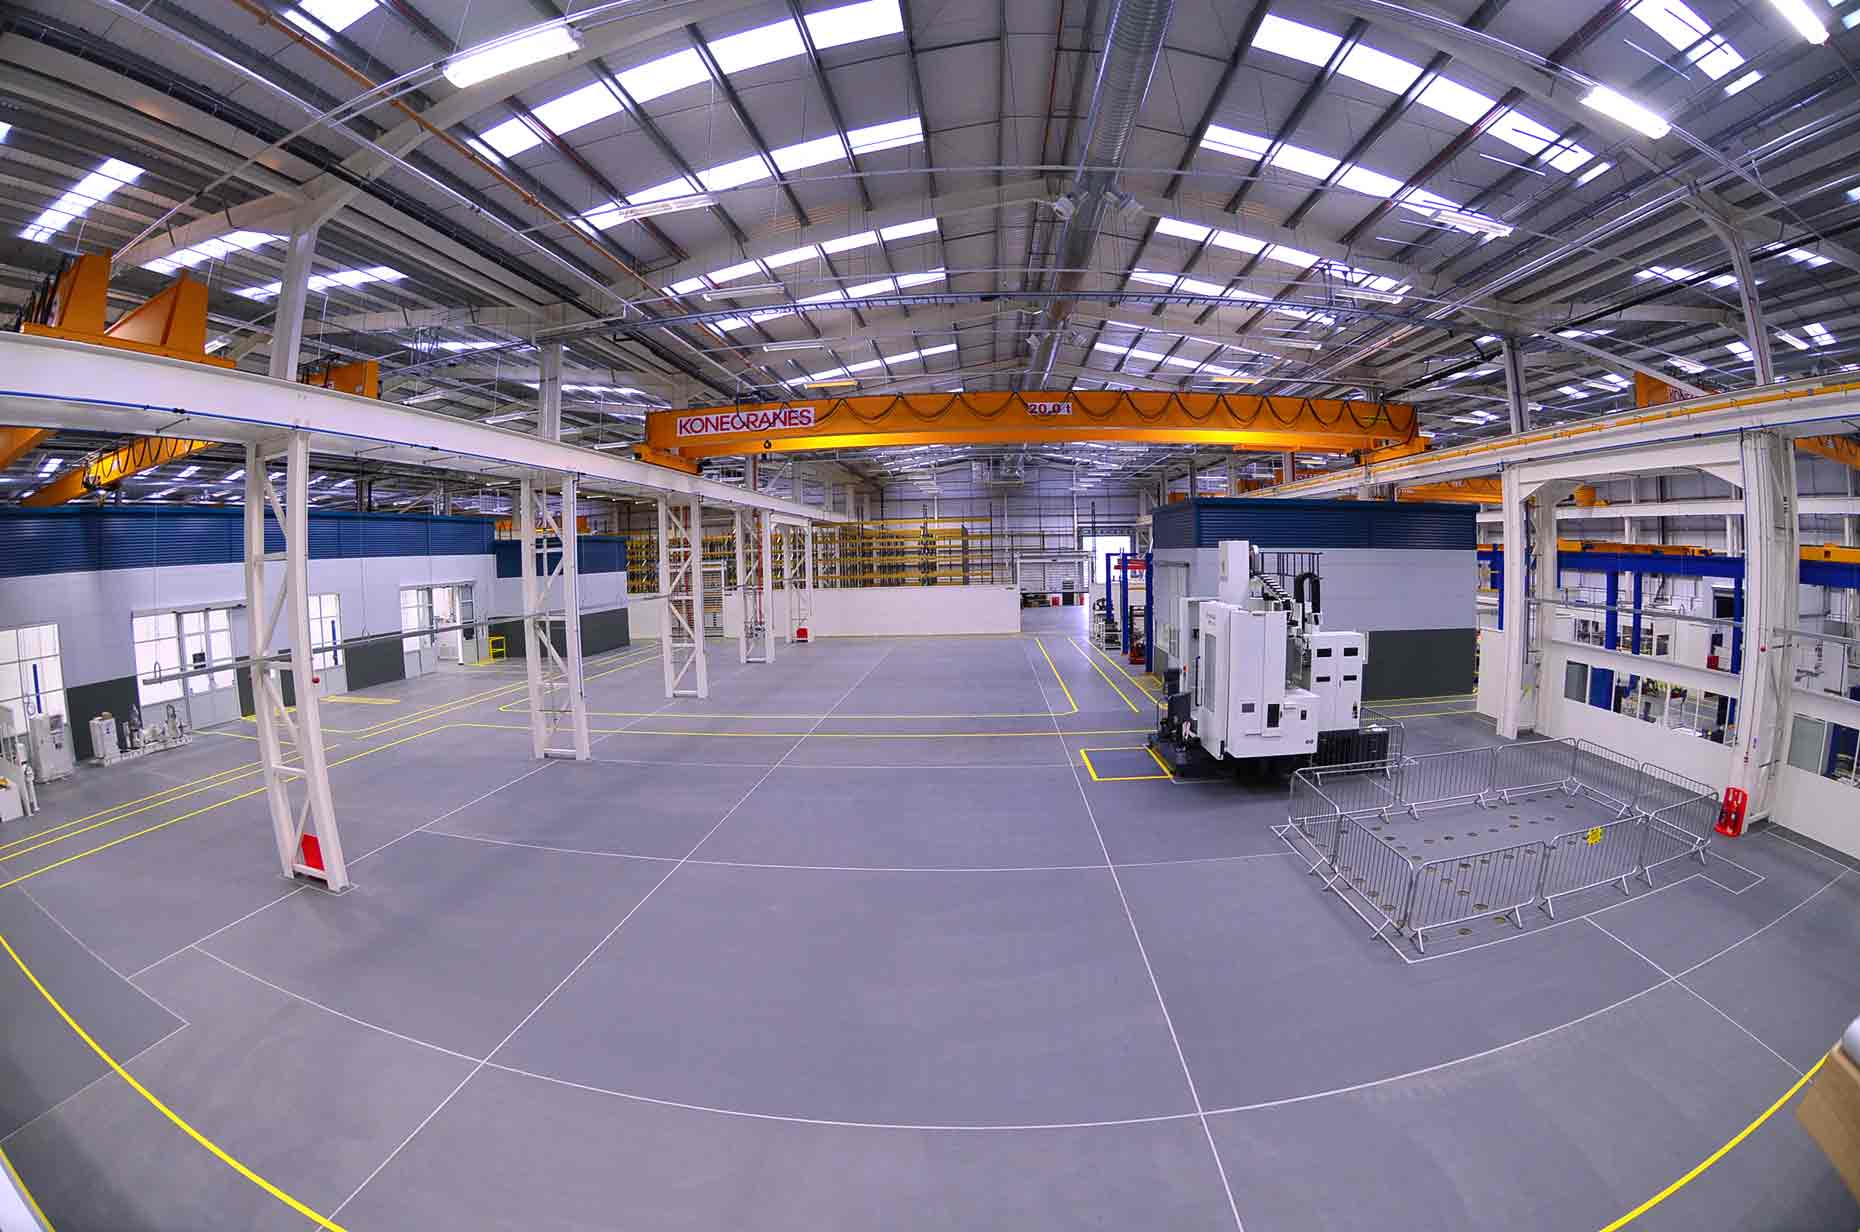 In pictures: Siemens new gas turbine facility at Teal Park